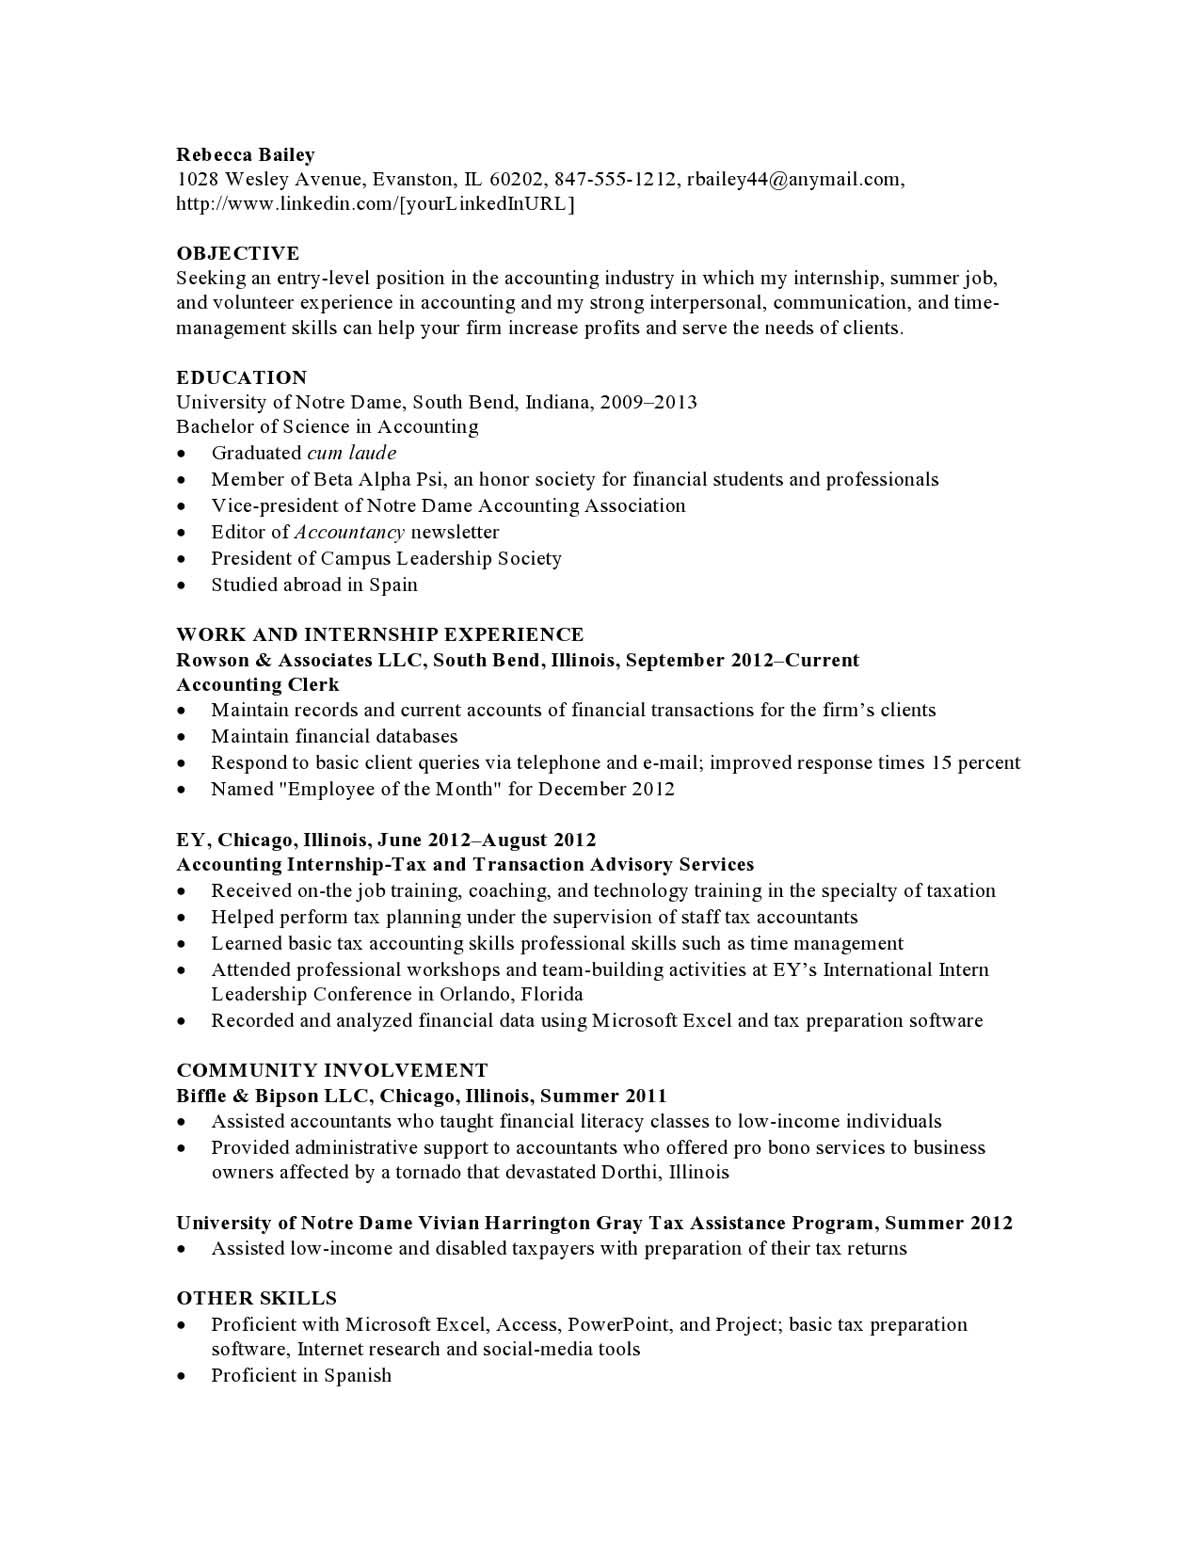 resume samples templates examples vault template with internship experience crescoact19 Resume Resume Template With Internship Experience